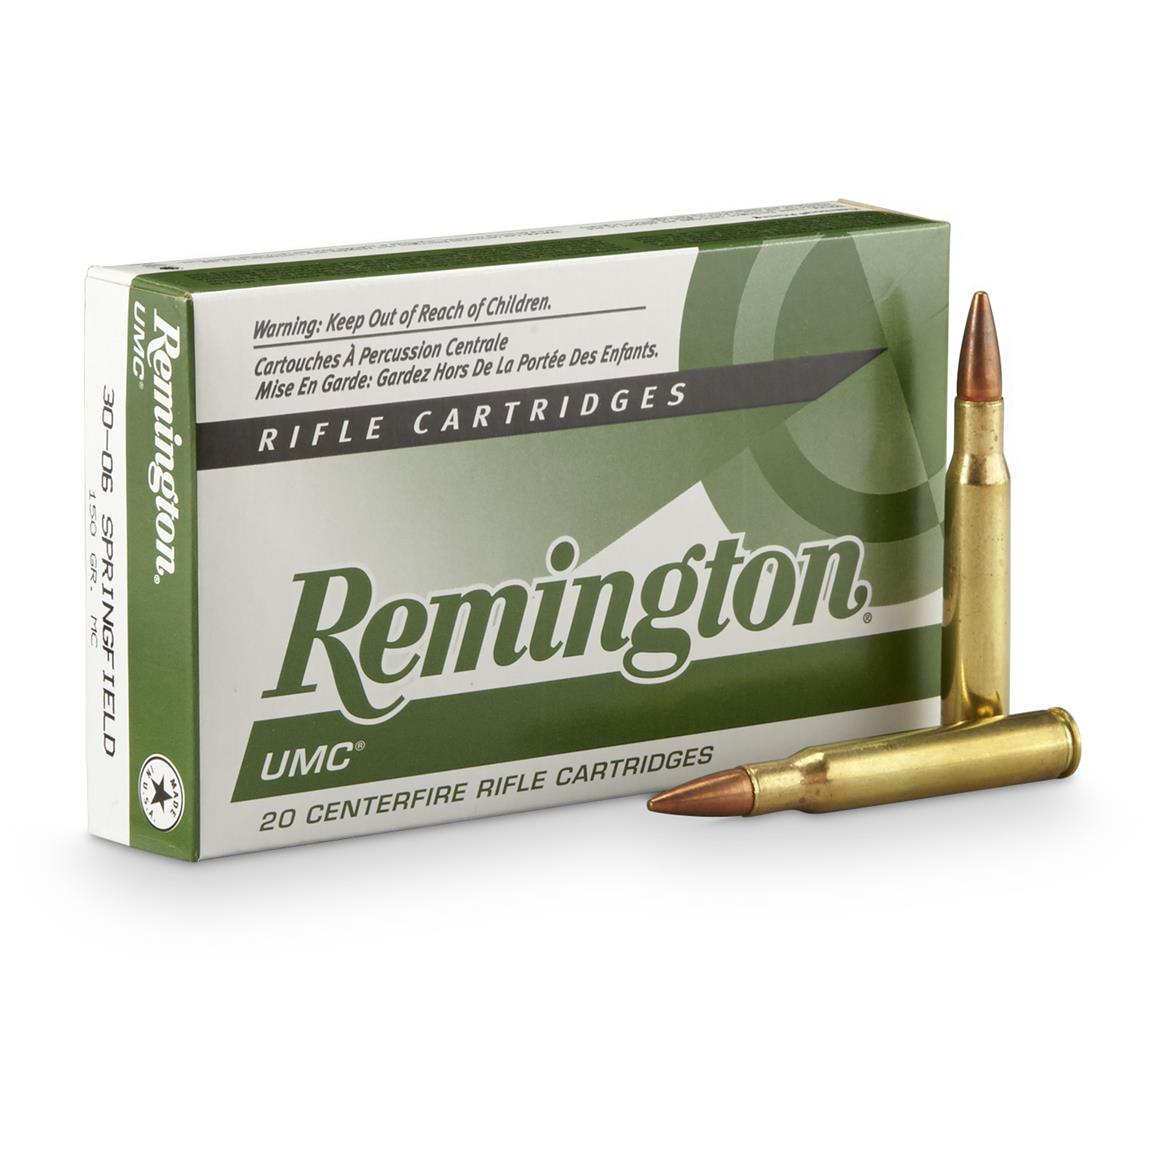 Remington UMC, .30-06 Springfield, MC, 150 Grain, 20 Rounds